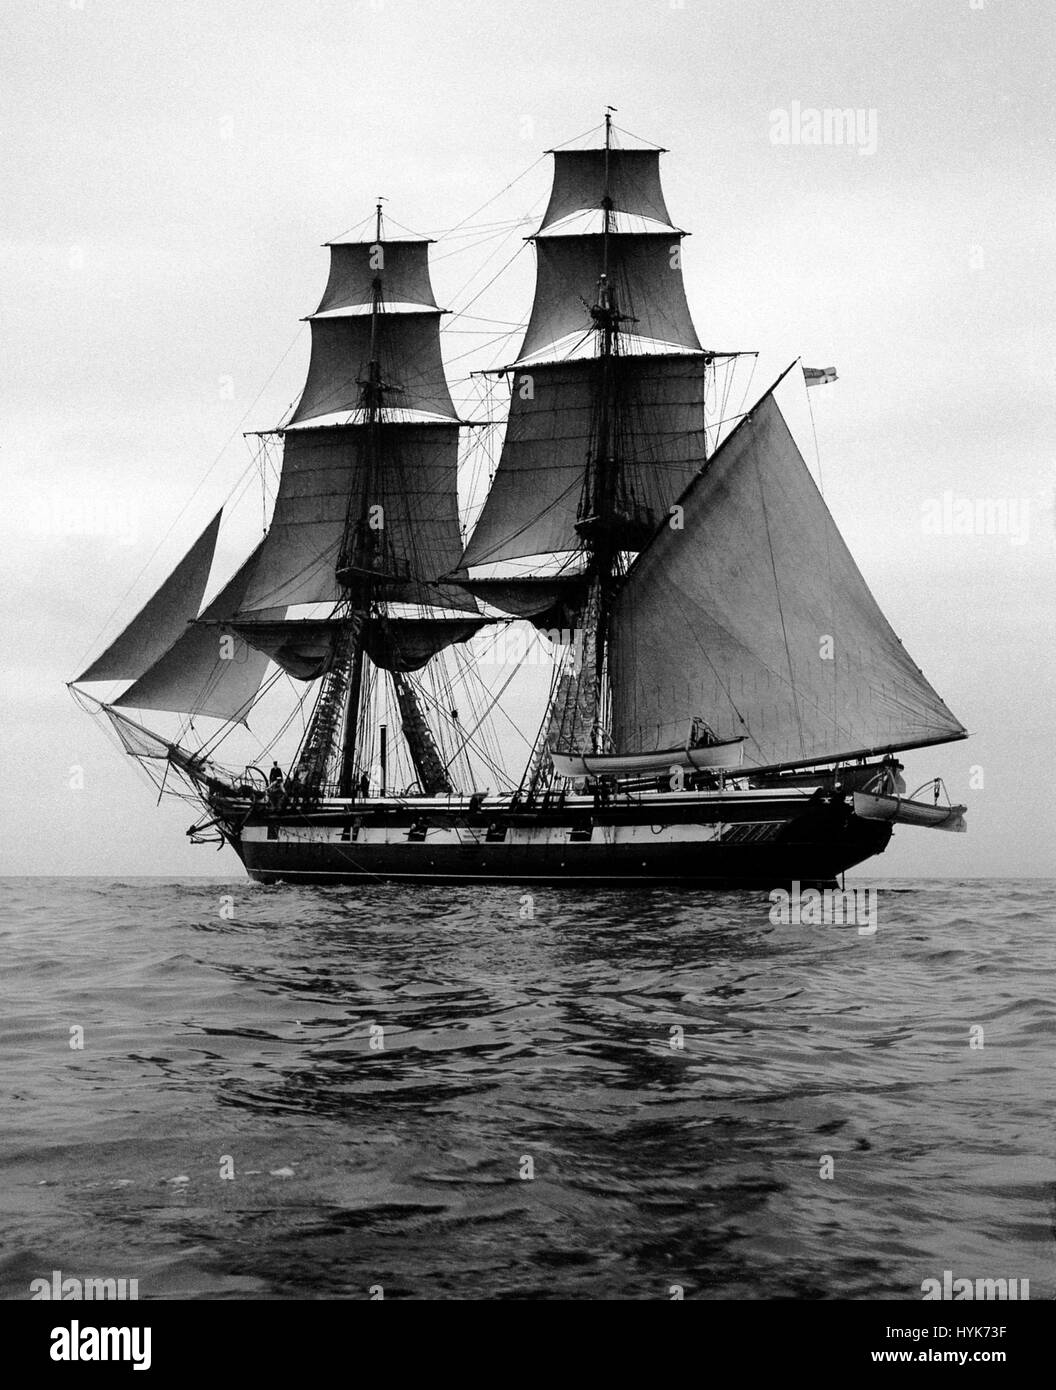 AJAXNETPHOTO.1900S. SOLENT, ENGLAND. - HMS MARTIN, BRIG, 503 TONS. ONE OF FIVE SAILING VESSELS USED BY THE ROYAL - Stock Image